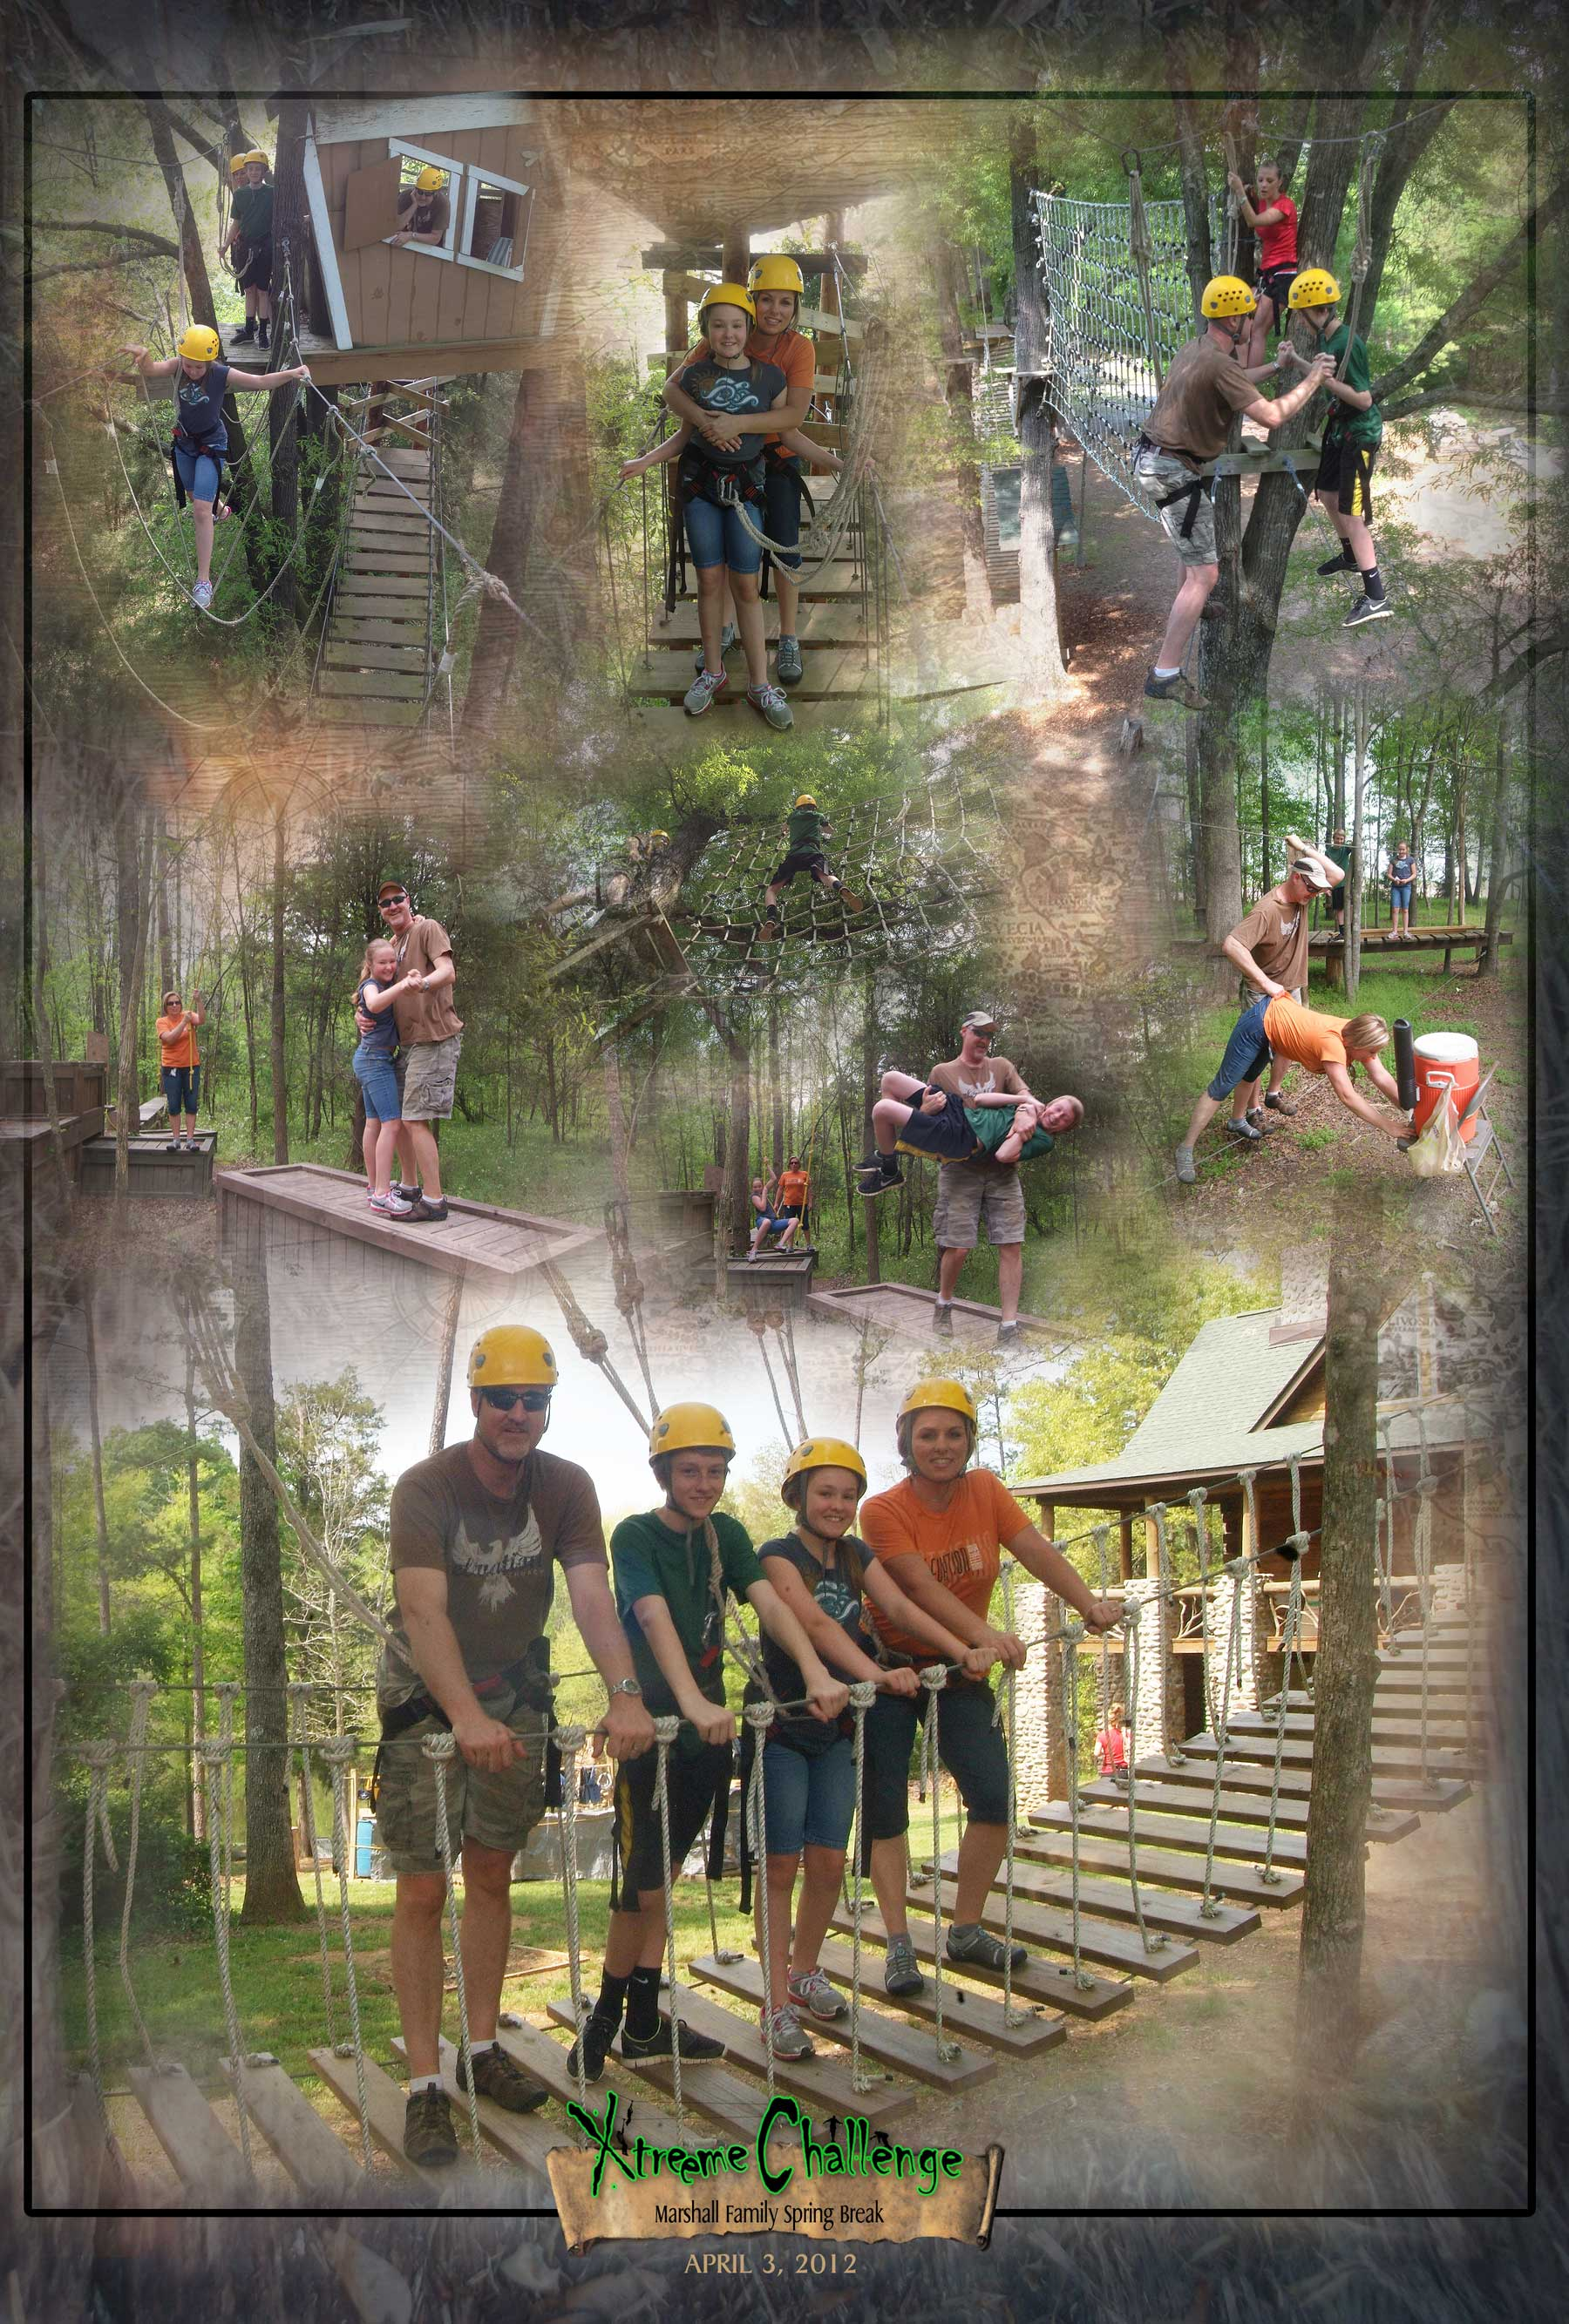 Action Adventure Posters from Xtreeme Challenge in Charlotte North Carolina